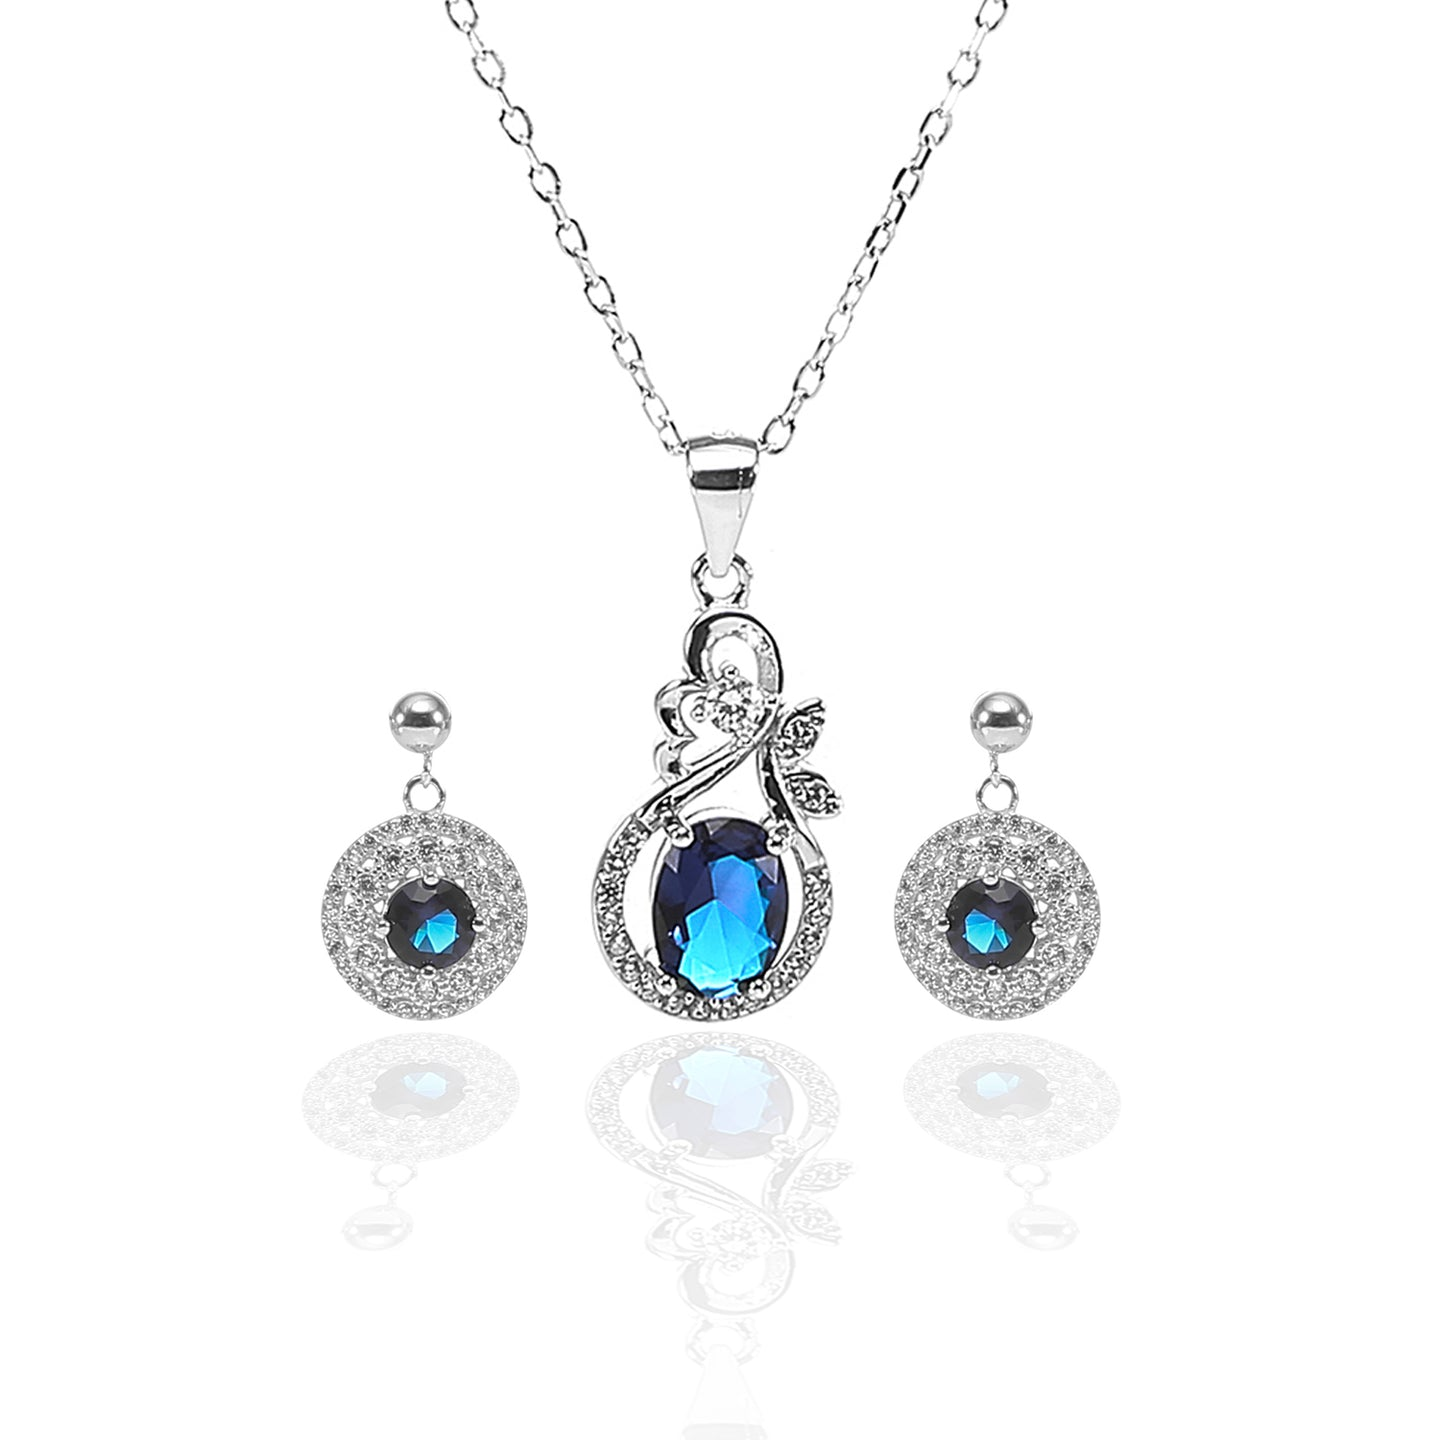 Designer Sapphire Necklace and Earrings Set - ARJW1008RD - ARCADIO LIFESTYLE